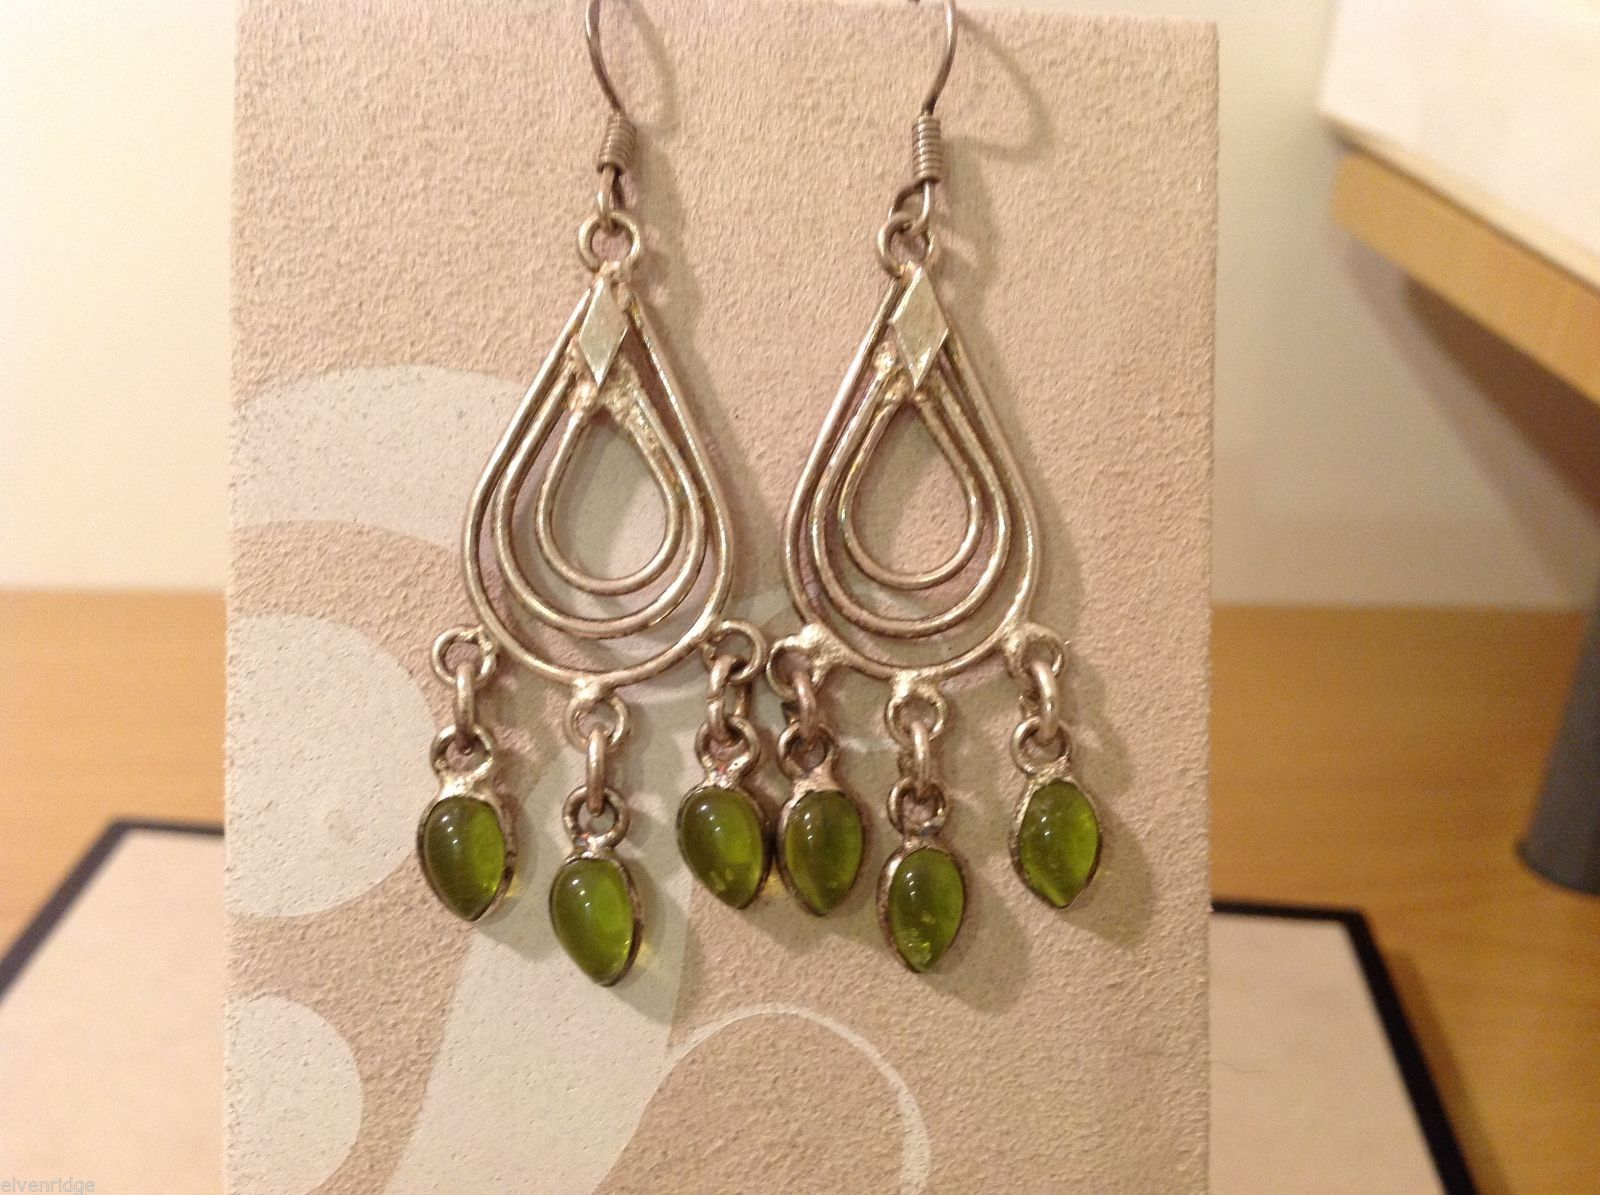 Two pairs of Vintage Green Silver Dangly Earrings